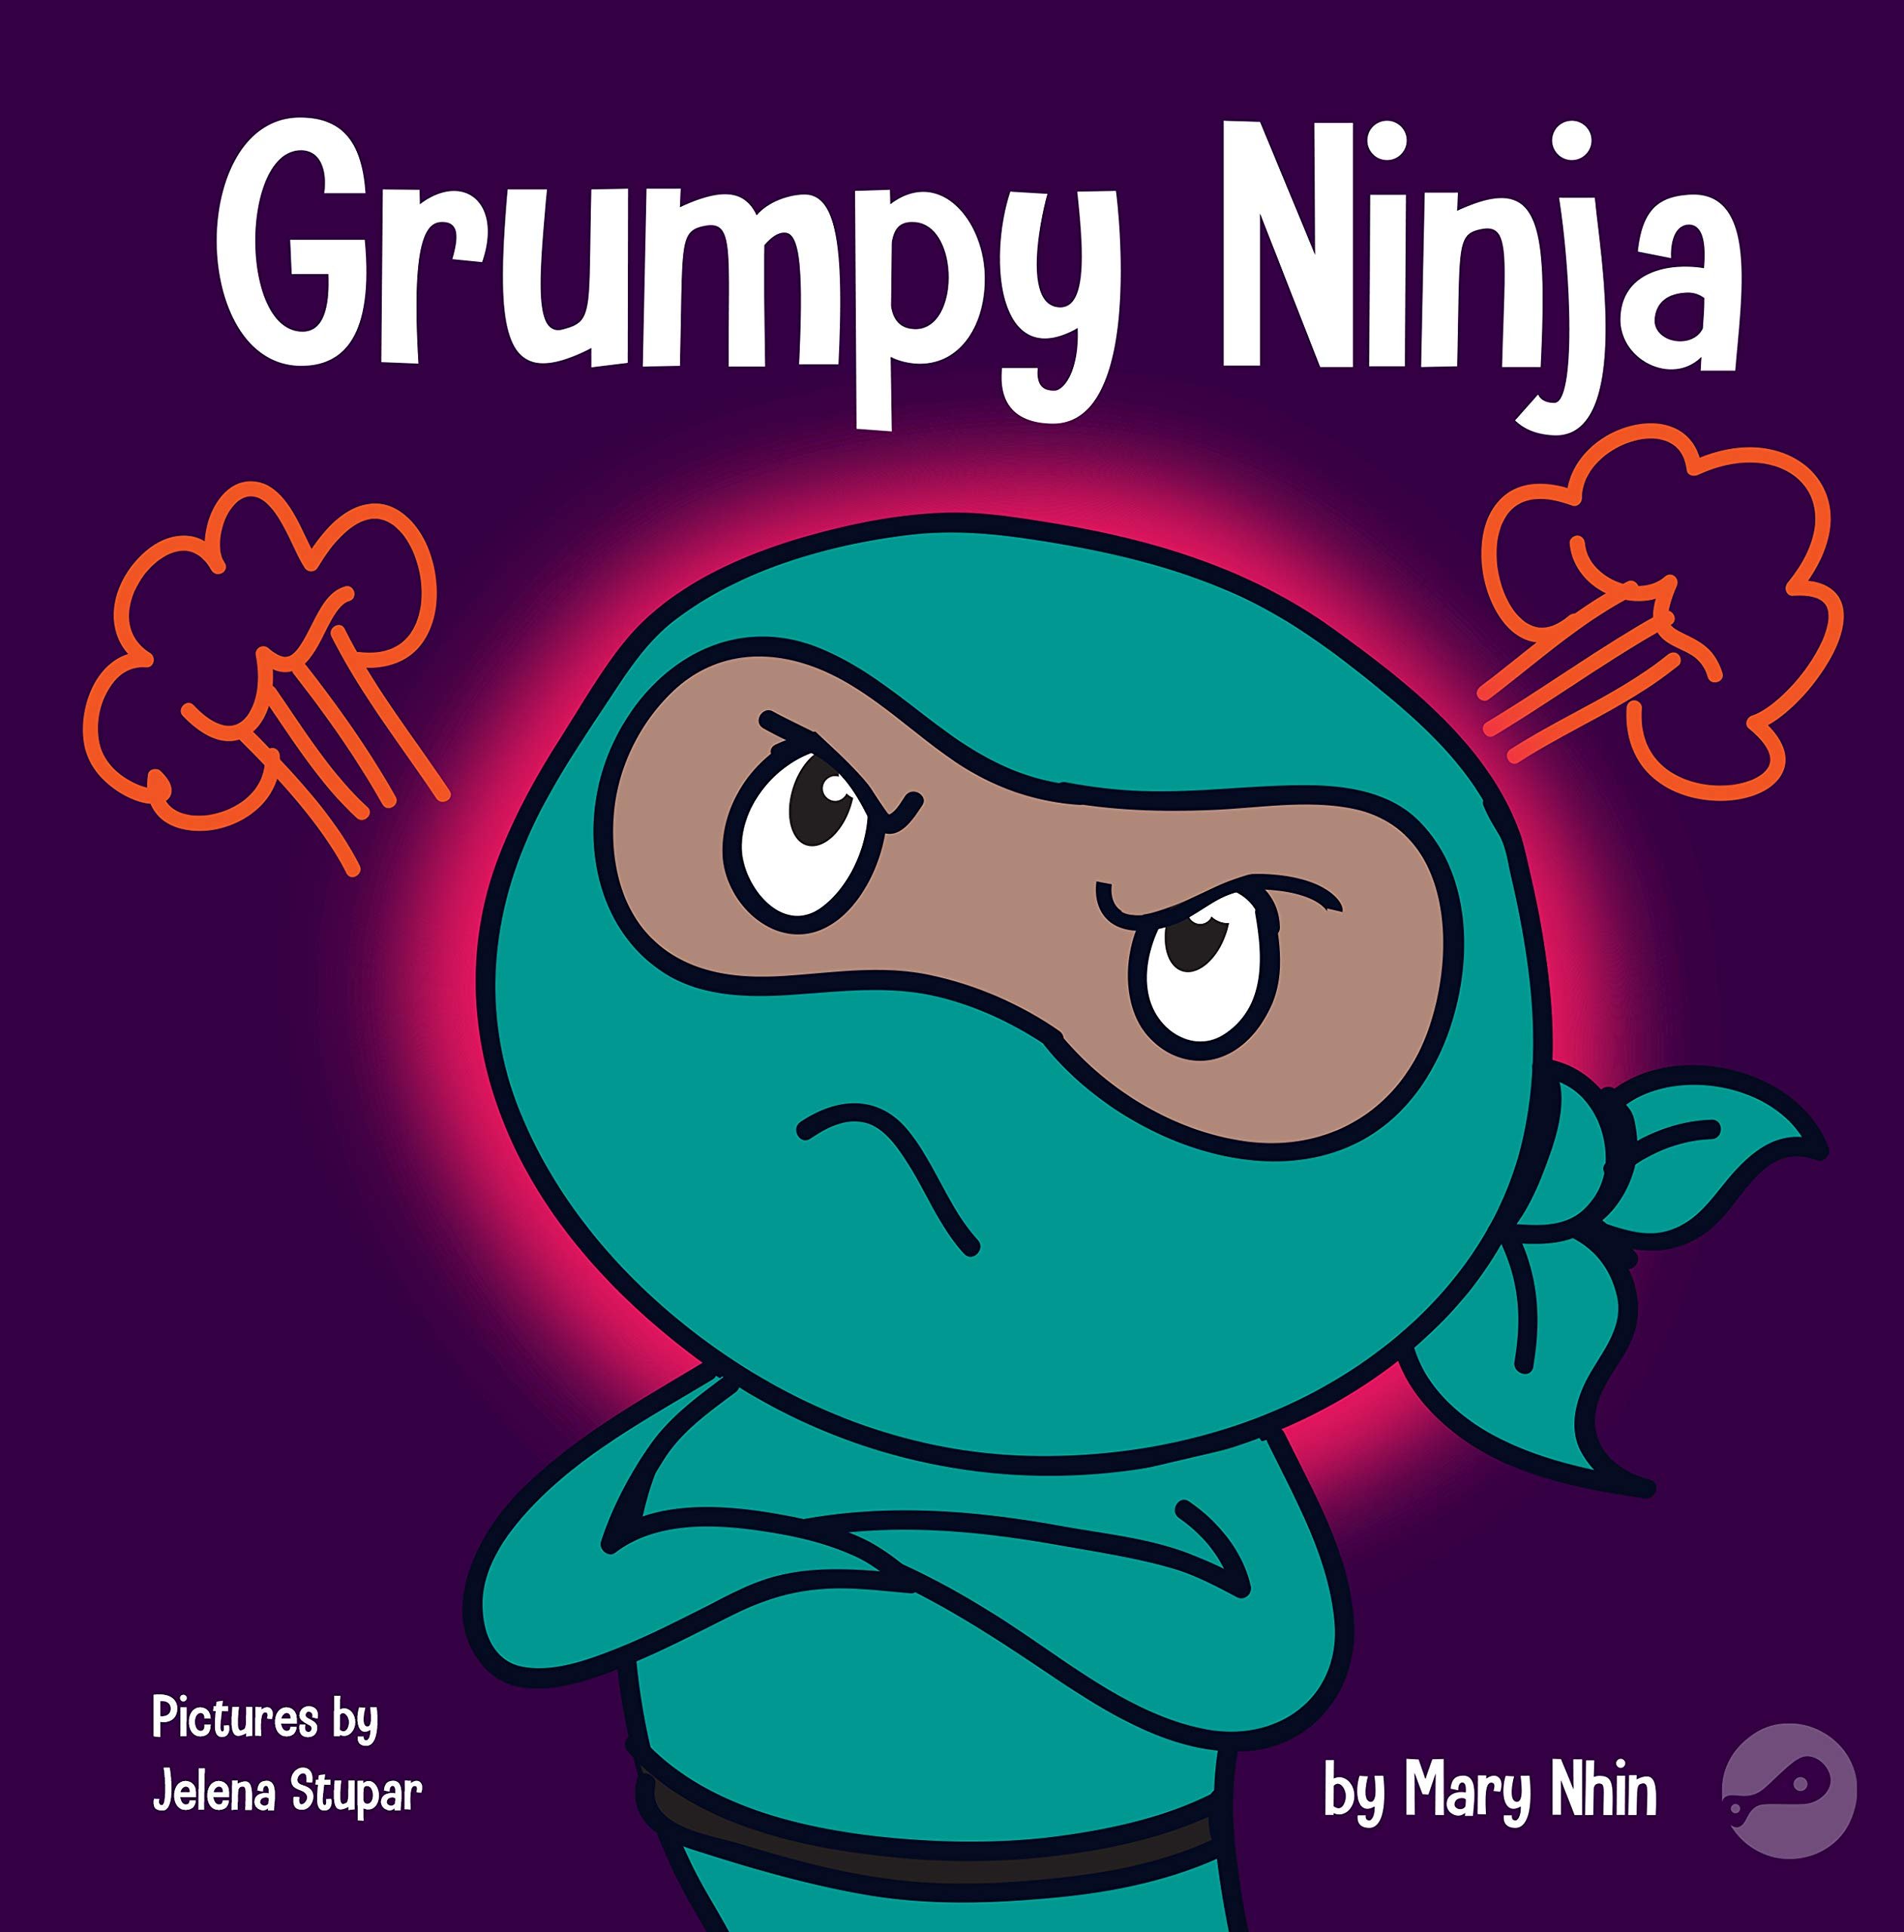 Grumpy Ninja: A Childrens Book About Gratitude and ...